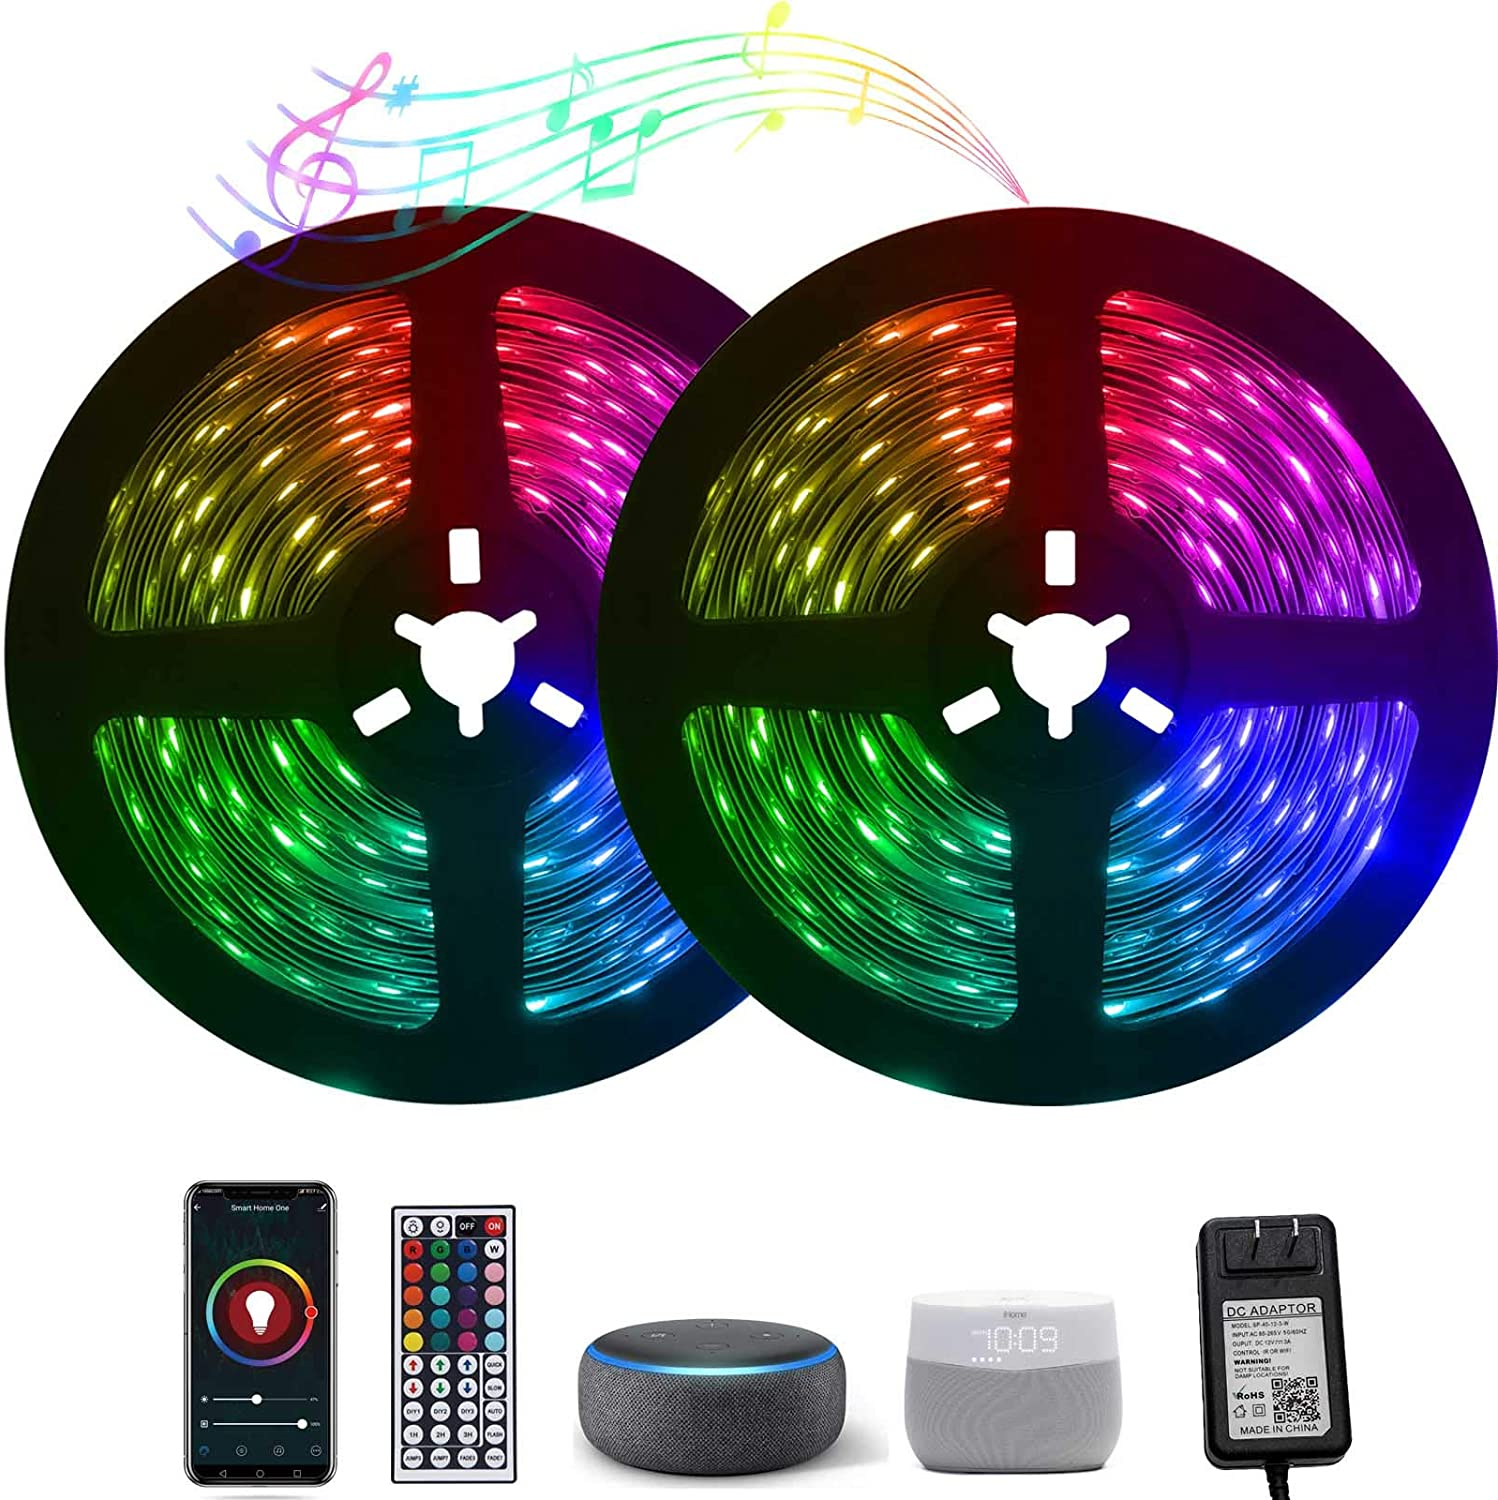 WiFi LED Strip Lights Work with Alexa Google Home, Xbuyee 80ft App Controlled LED Light Strip with 44-Key Remote, Flexible Color Changing 5050 RGB Light Strips for Bedroom, Kitchen, Home (2x40ft)